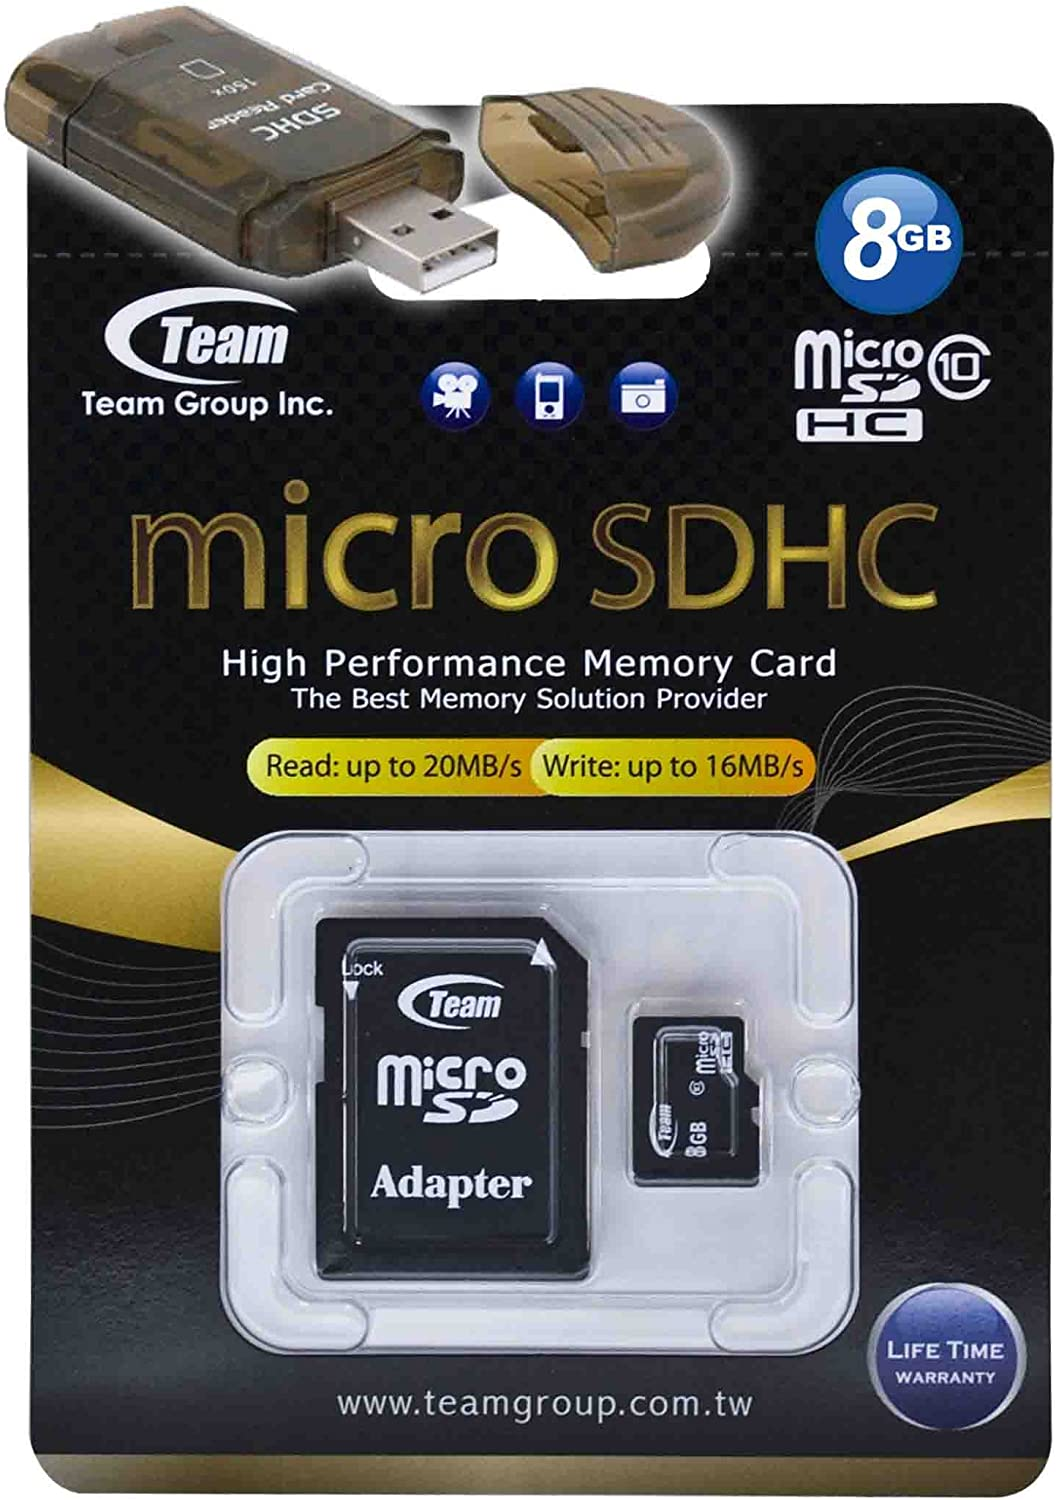 Comes with. 16GB Class 10 MicroSDHC Team High Speed 20MB//Sec Memory Card A free High Speed USB Adapter is included Blazing Fast Card For LG GLIMMER AX830 AX565 phone